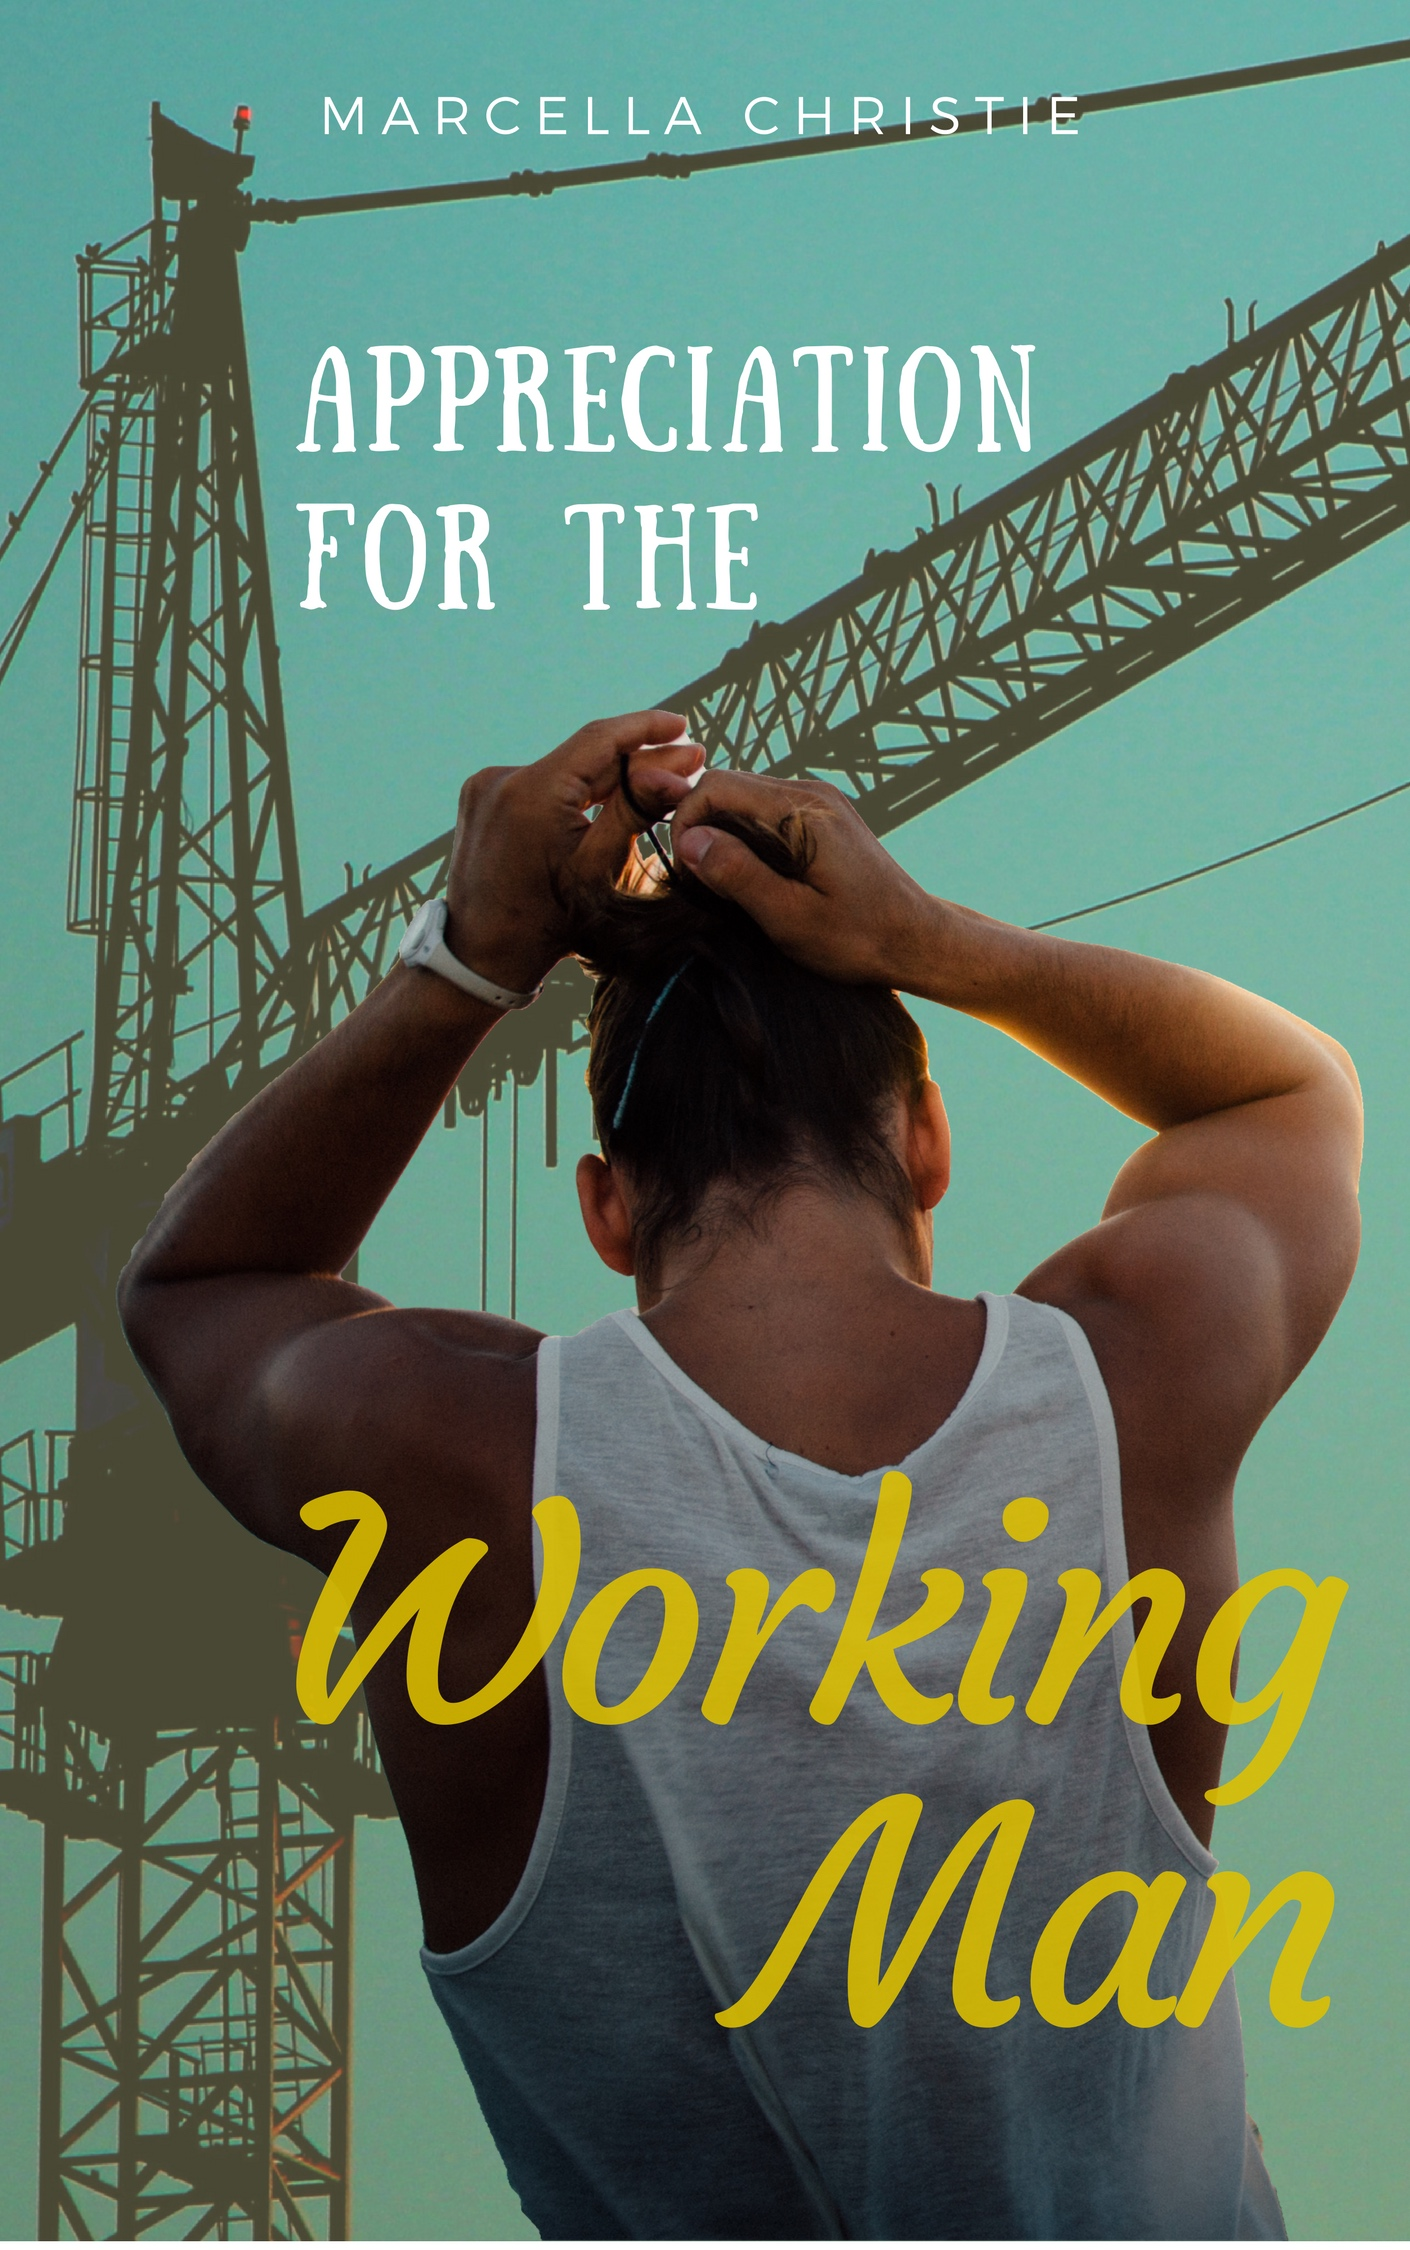 Appreciation for the Working Man